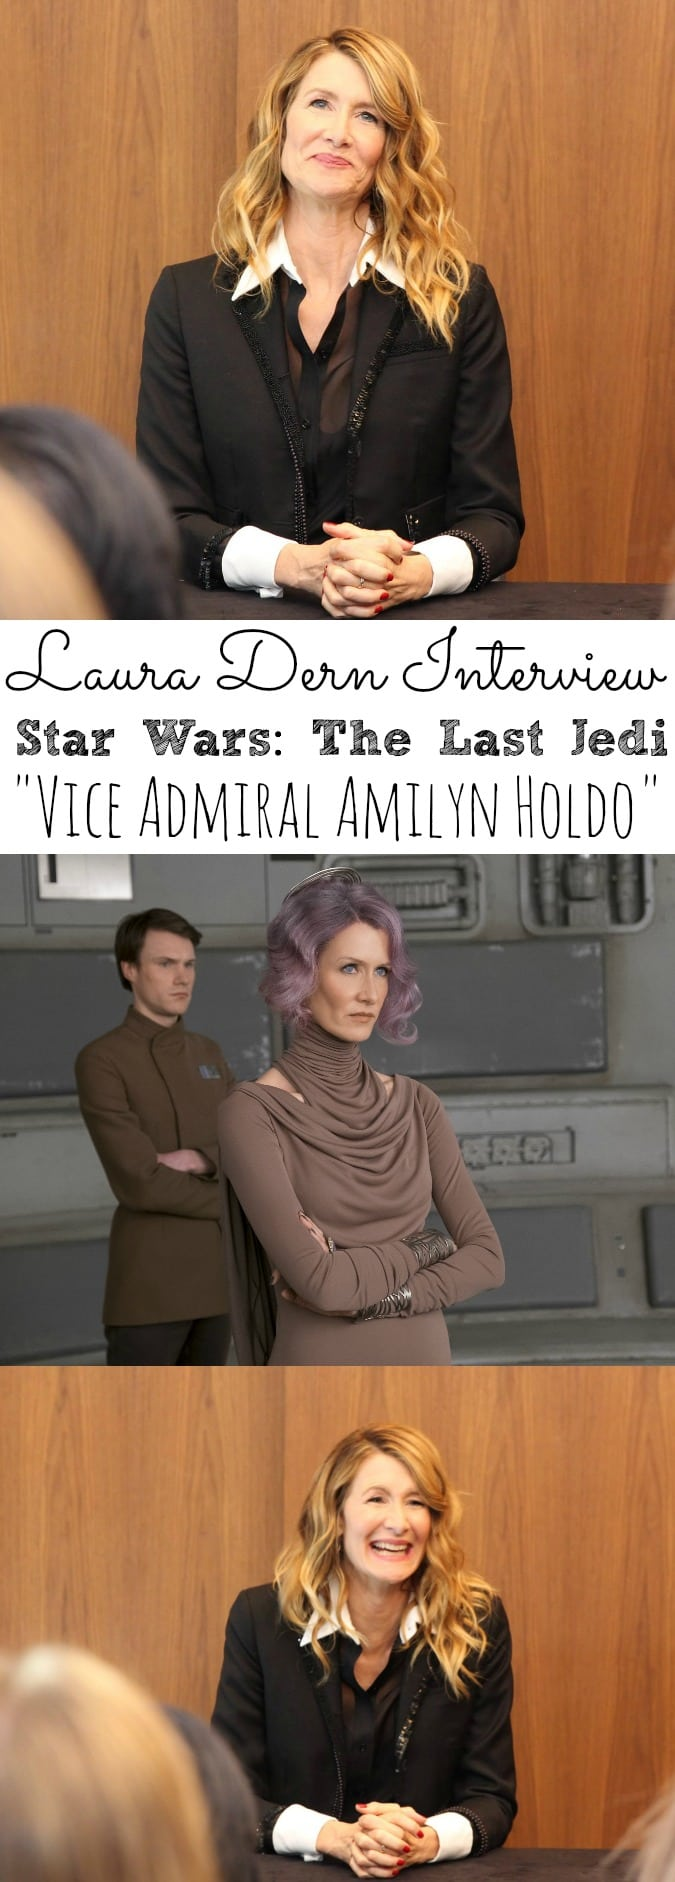 Laura Dern Interview The Last Jedi